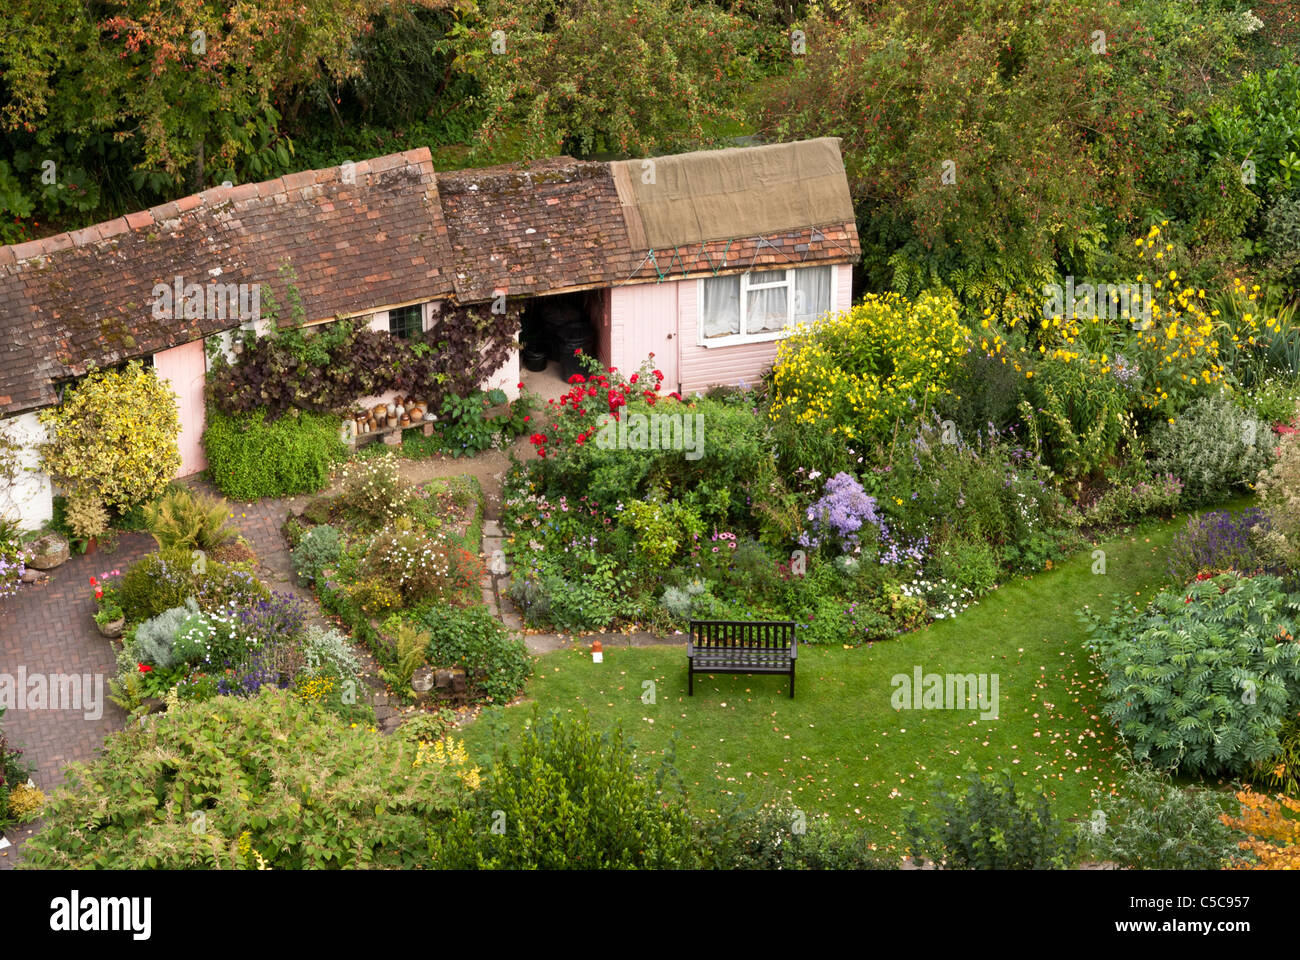 Old English Cottage Garden At 1 Mill St Viewed From The Walls Of Warwick  Castle, Warwick, England, UK